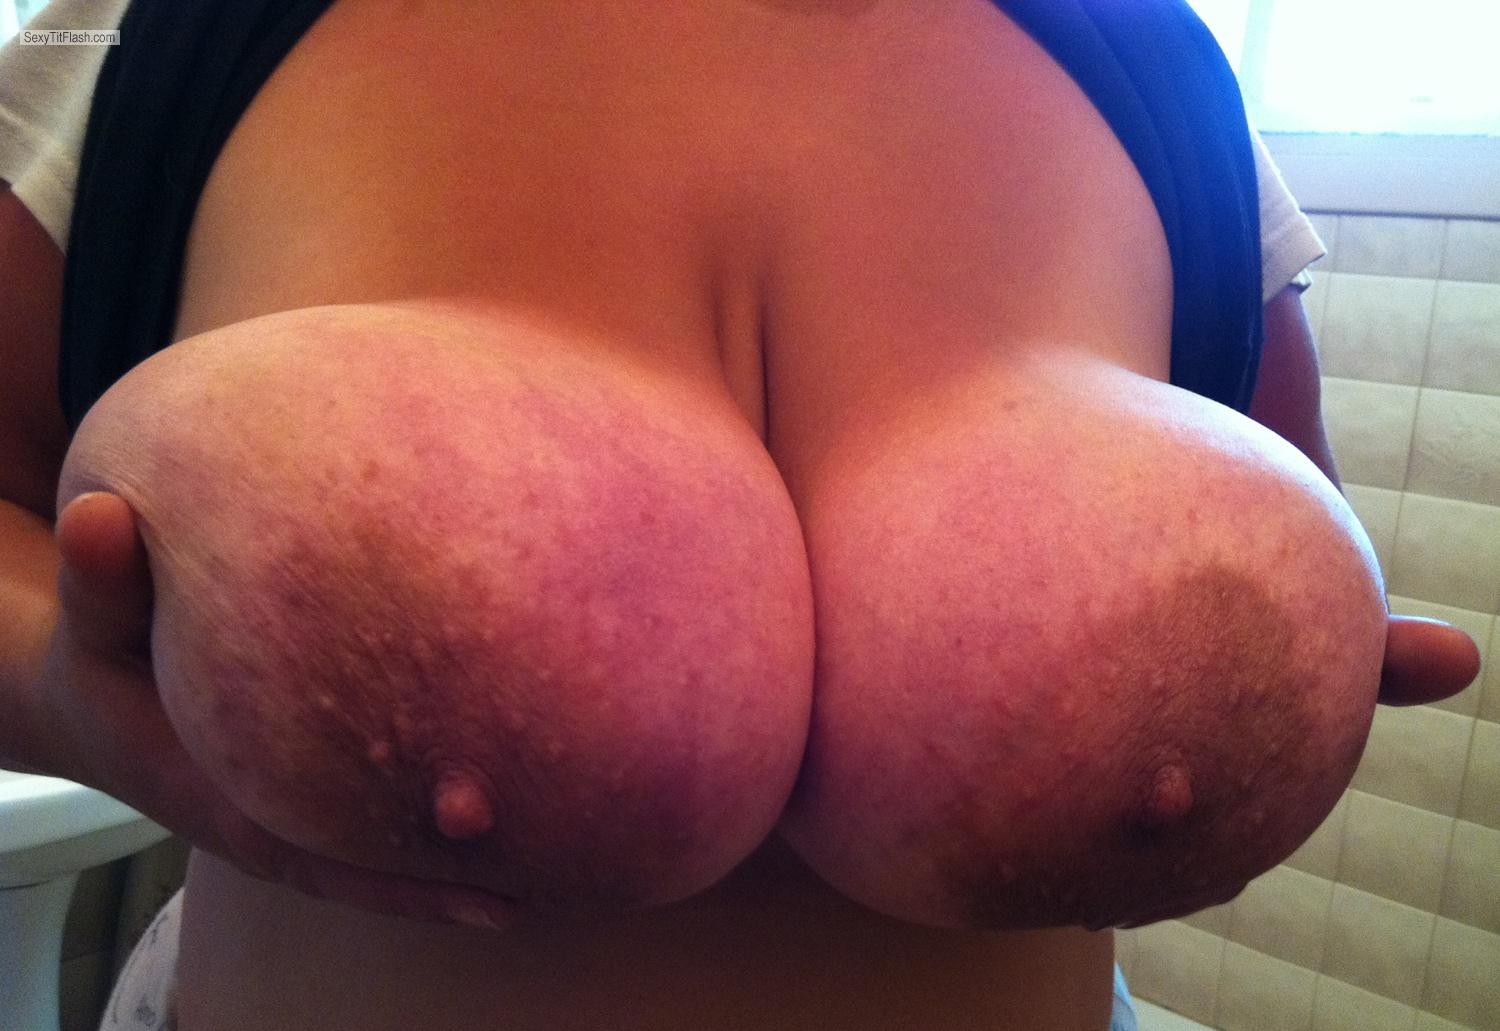 Extremely big Tits Mandy6980